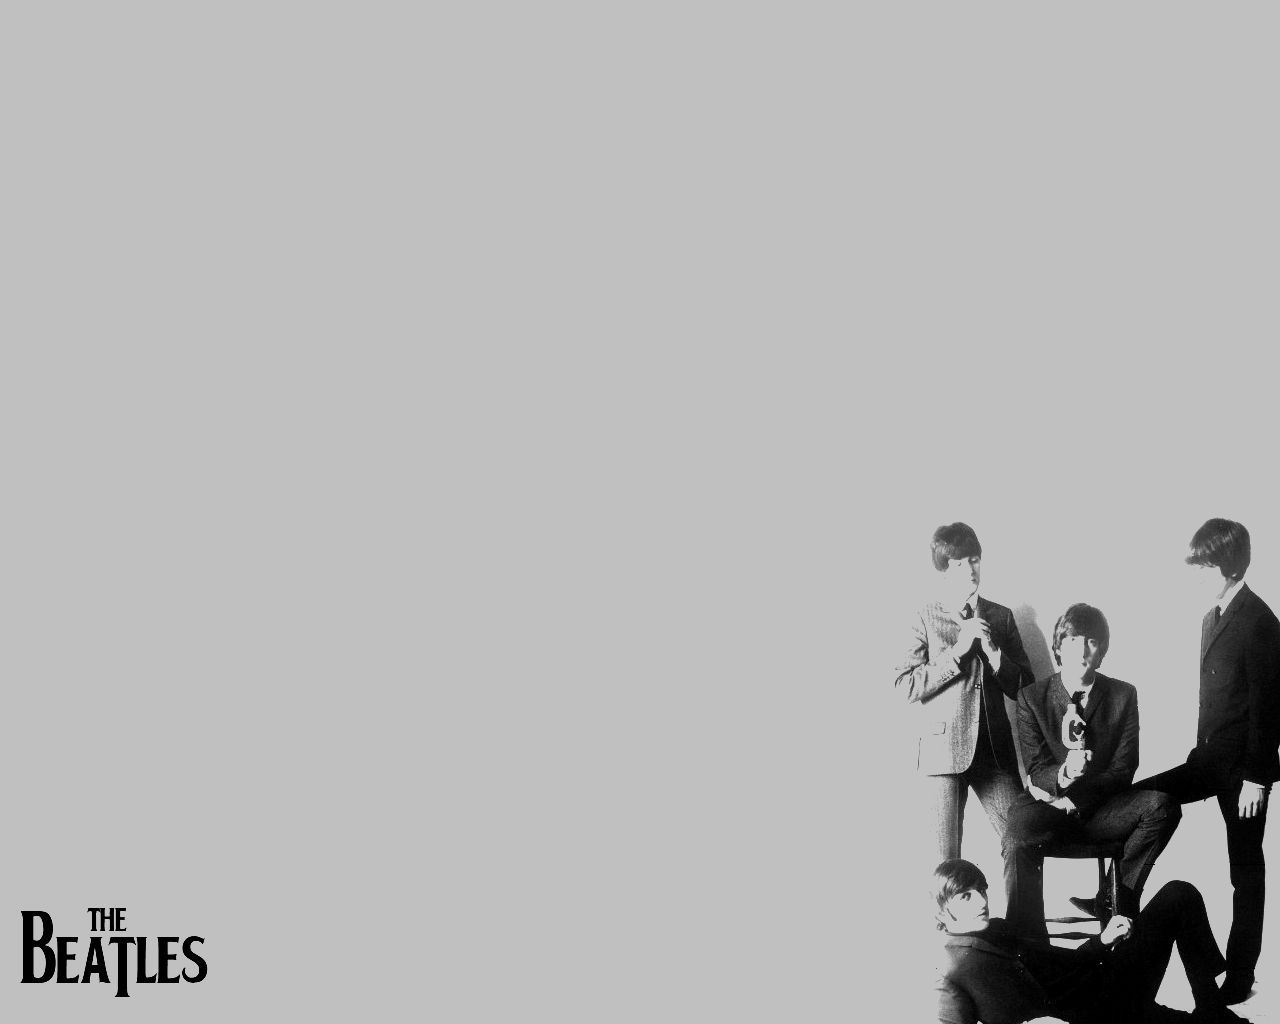 The Beatles Wallpaper For Iphone Plus 1280x1024